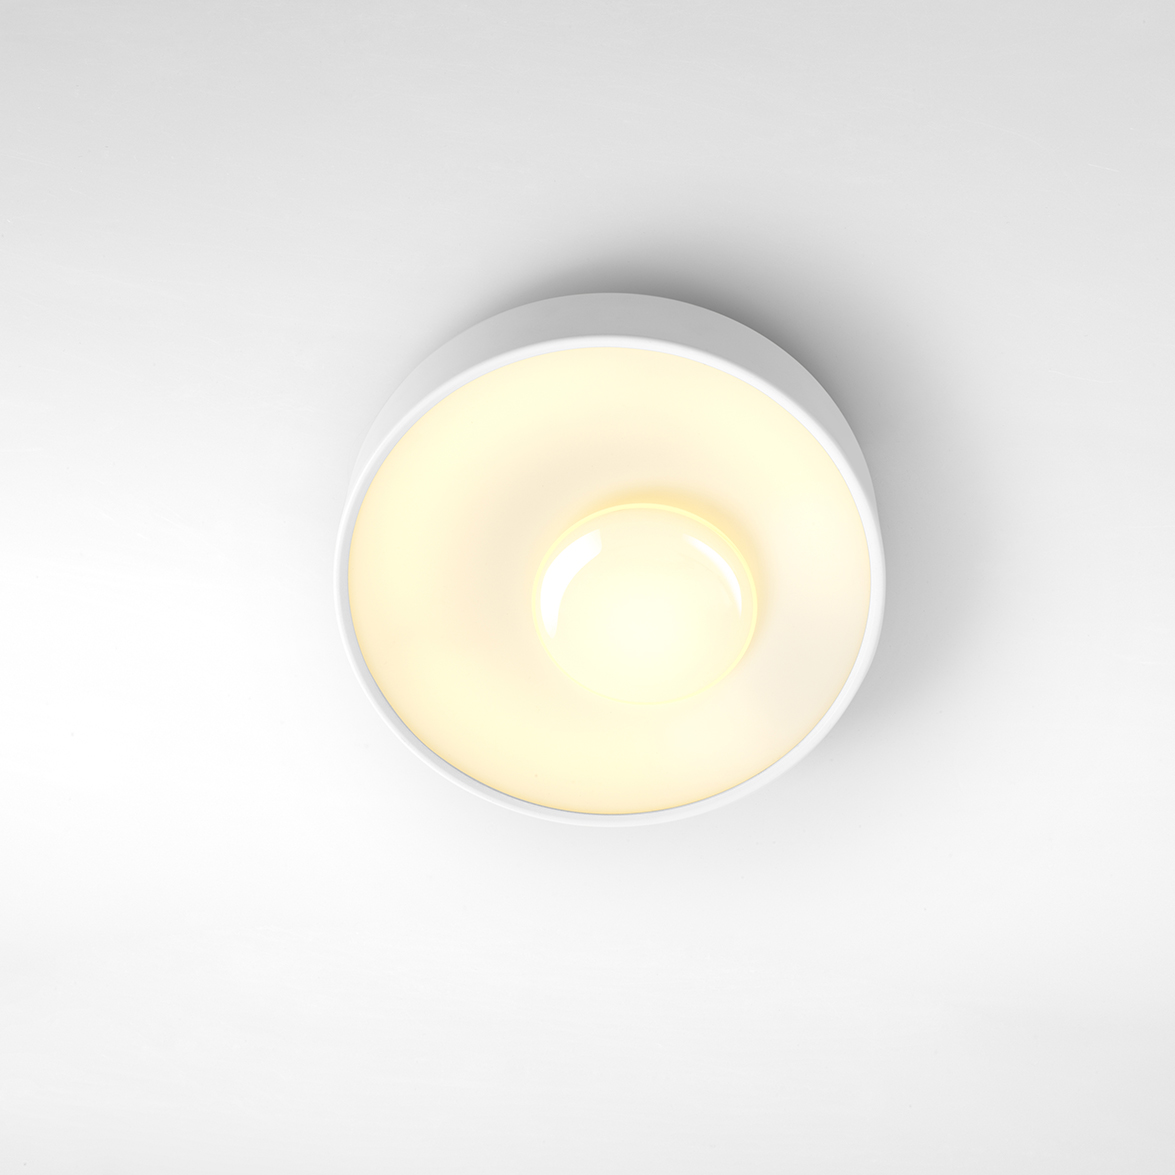 Sun Plafón 40 LED 25.9W Blanco (Dimmable)